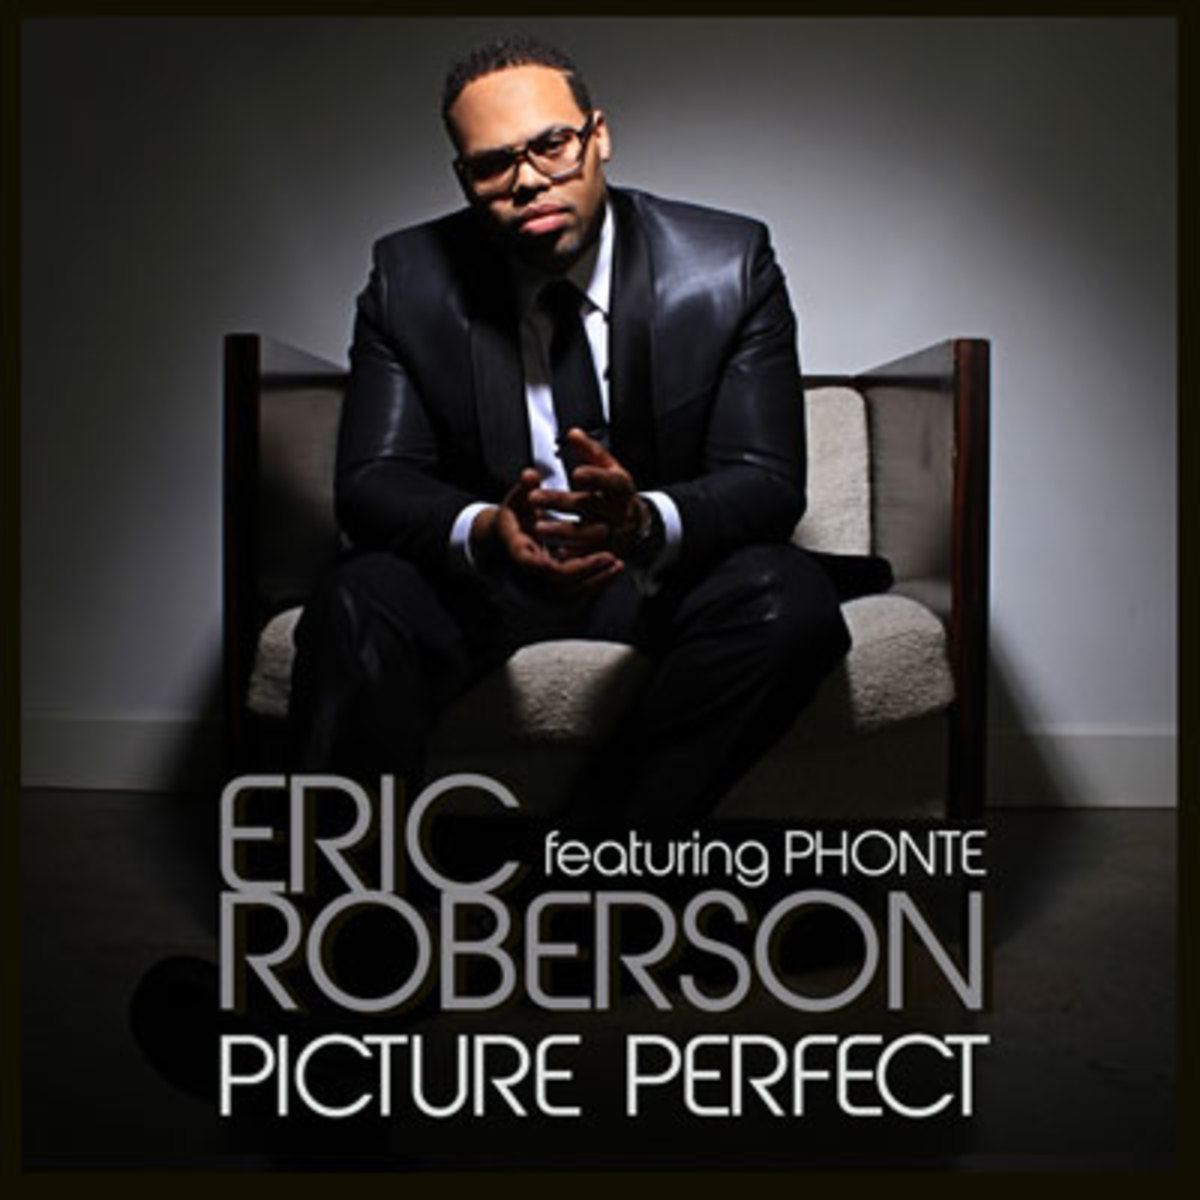 ericroberson-pictureperfect.jpg